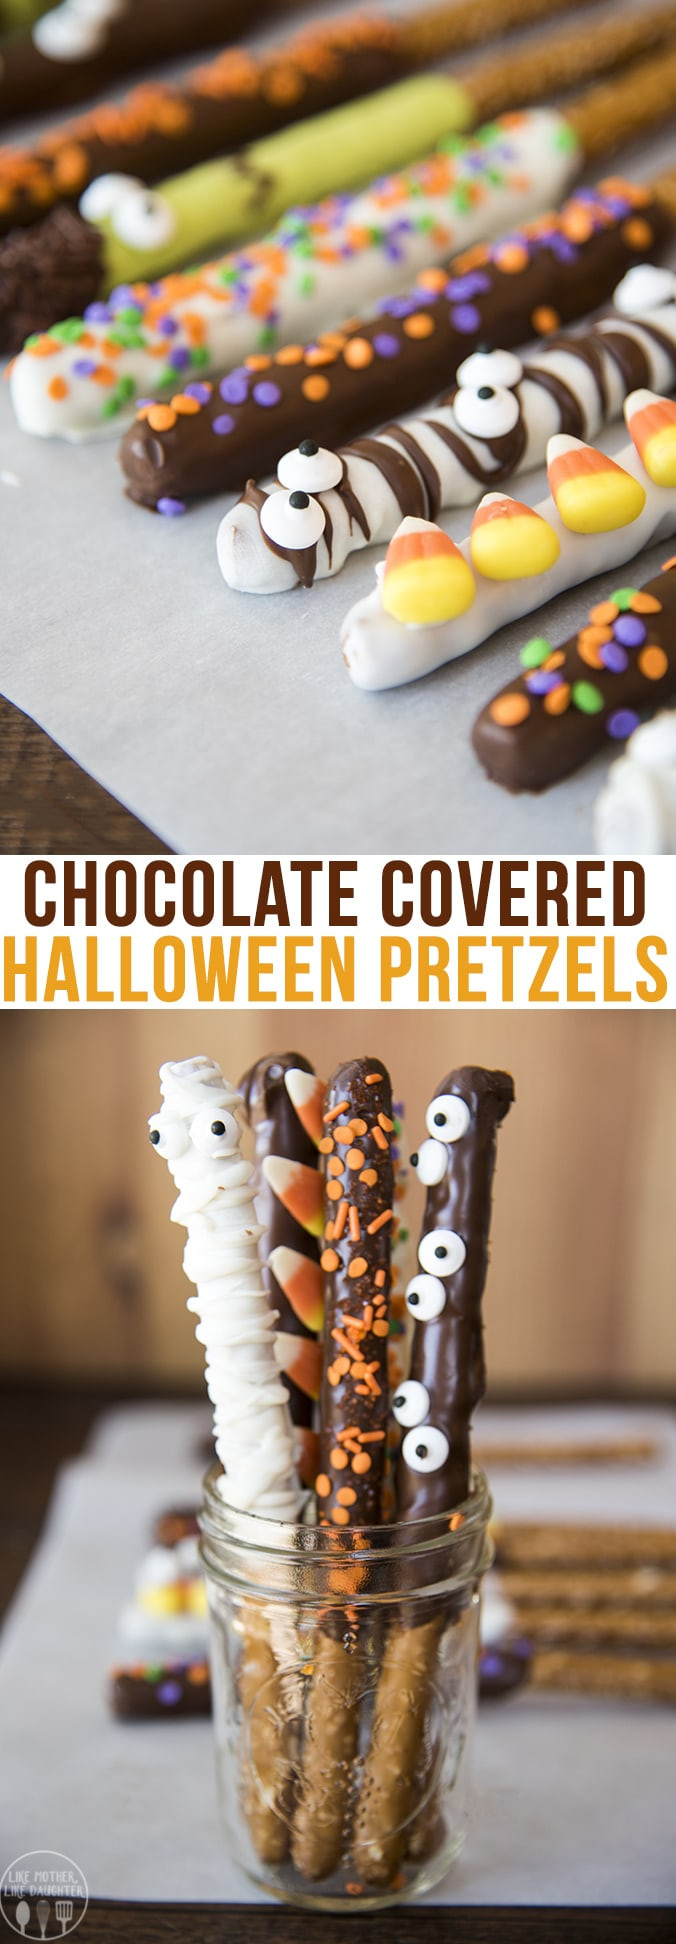 Halloween Chocolate Covered Pretzels  Chocolate Covered Halloween Pretzels – Like Mother Like